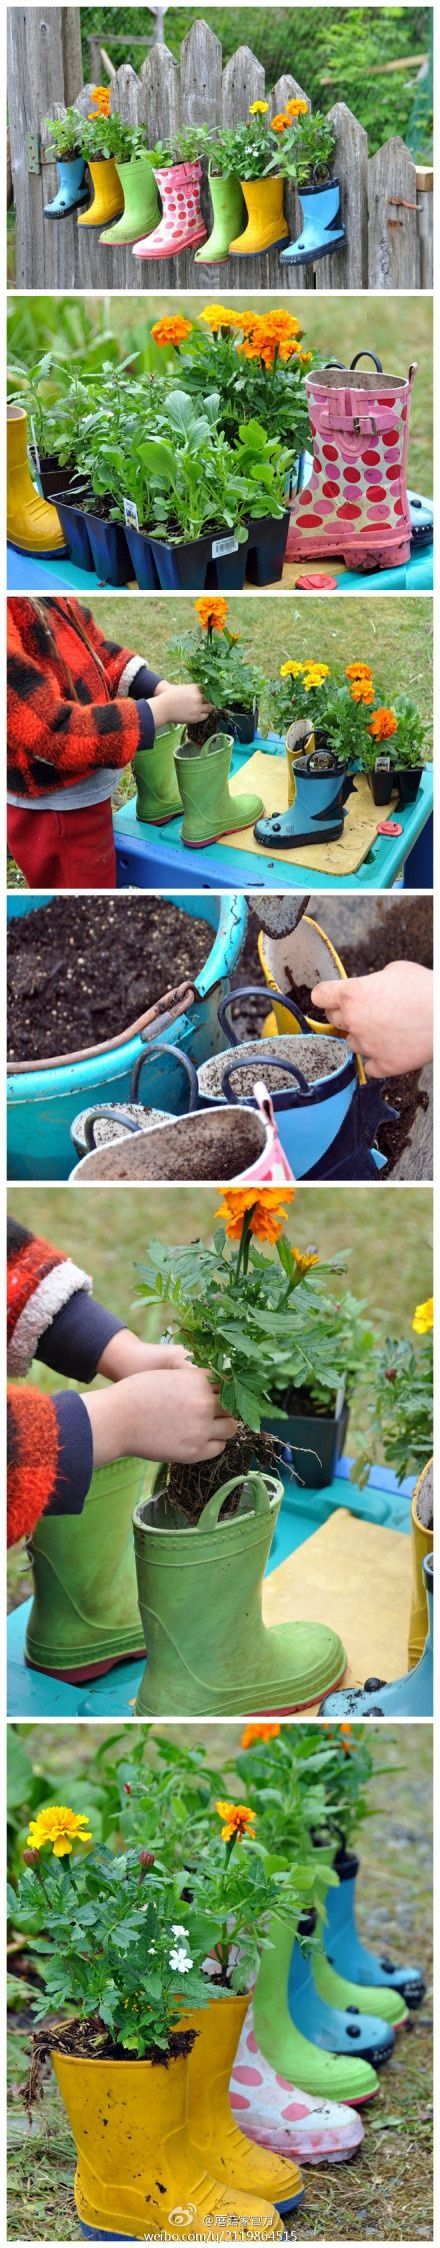 Creative idea for gardening.  Even gets the kids involved. – Kid Friendly Things To Do